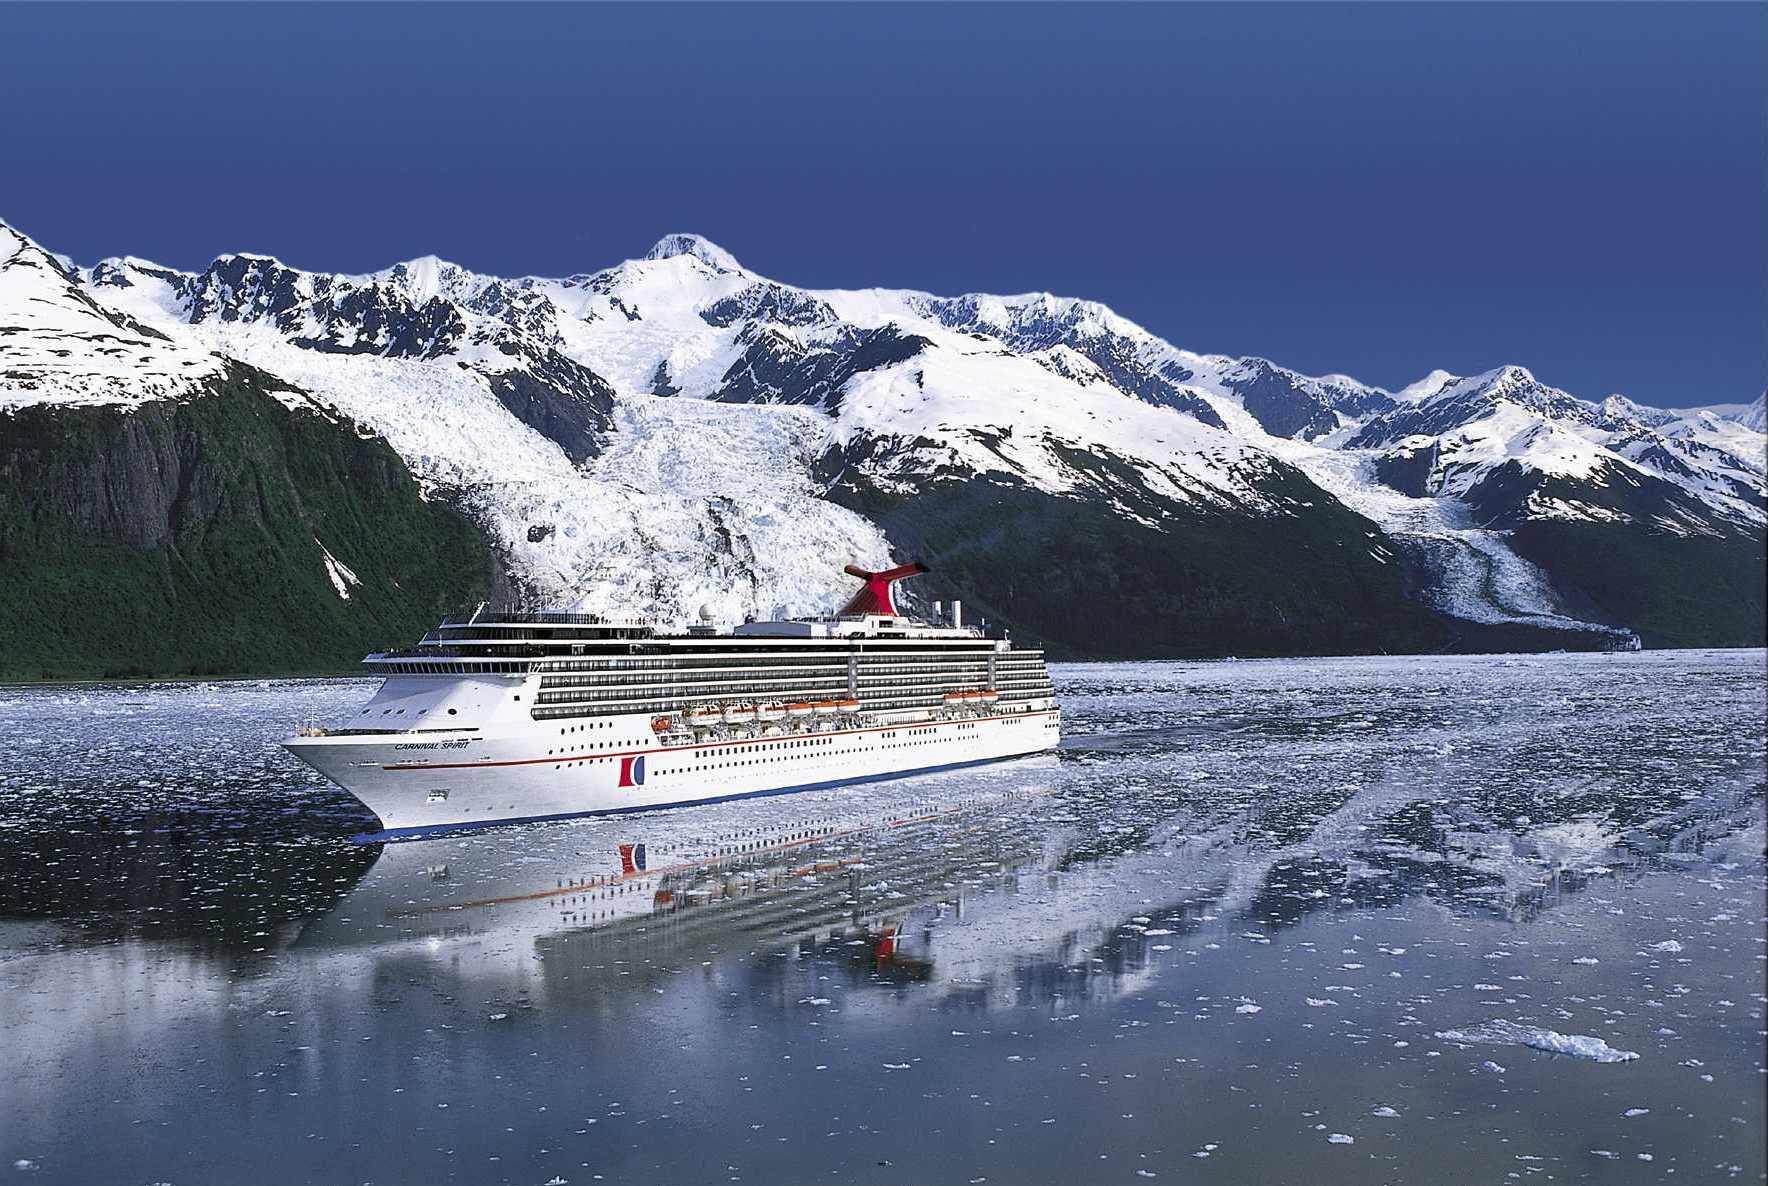 Alaska Cruise Wallpaper PicsWallpapercom 1768x1186